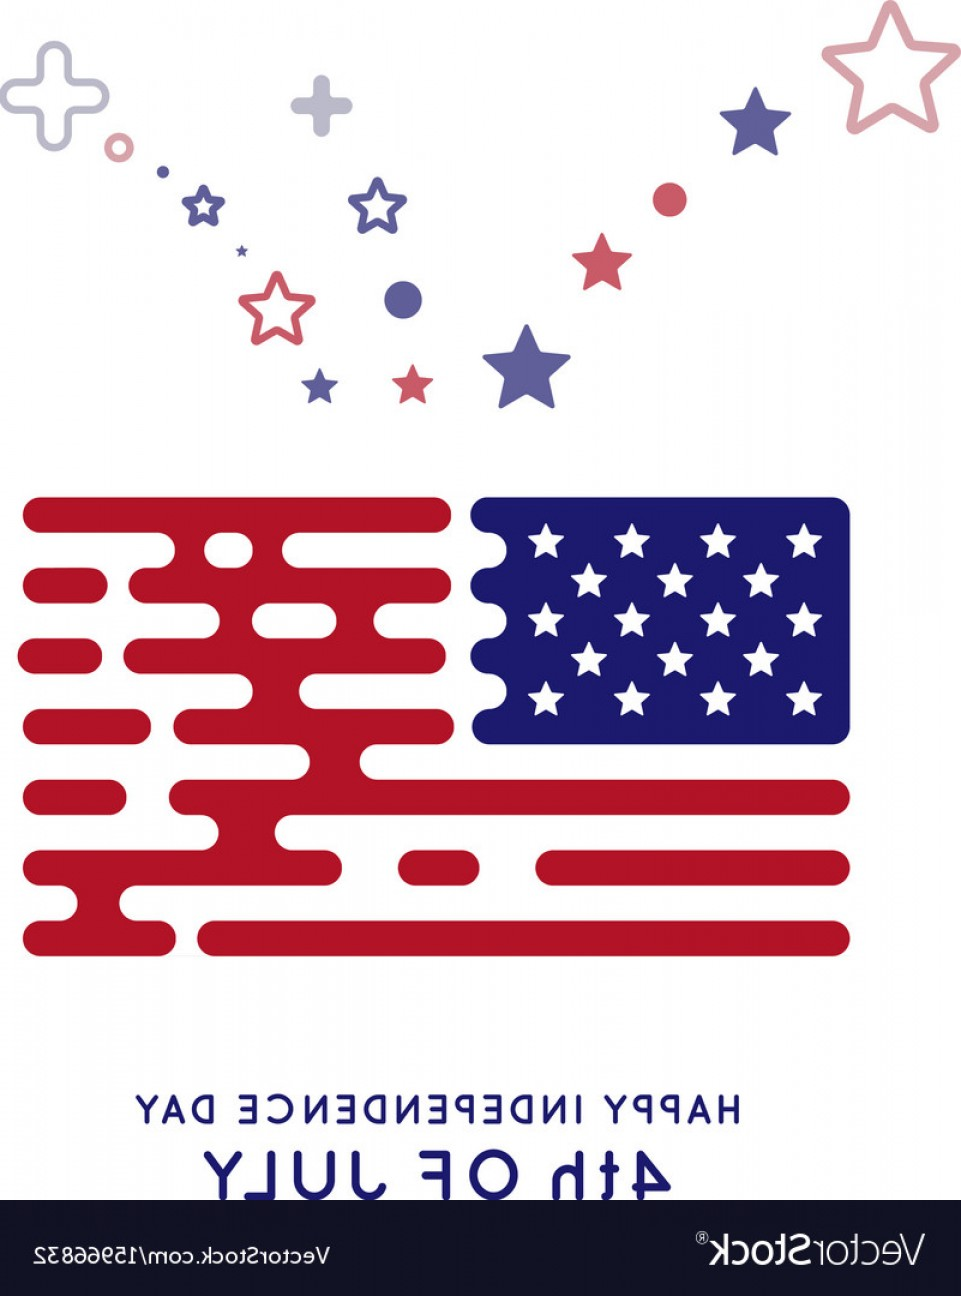 US Flag Vector Lines: The Us Flag In The Style Of Rounded Lines Hipster Vector